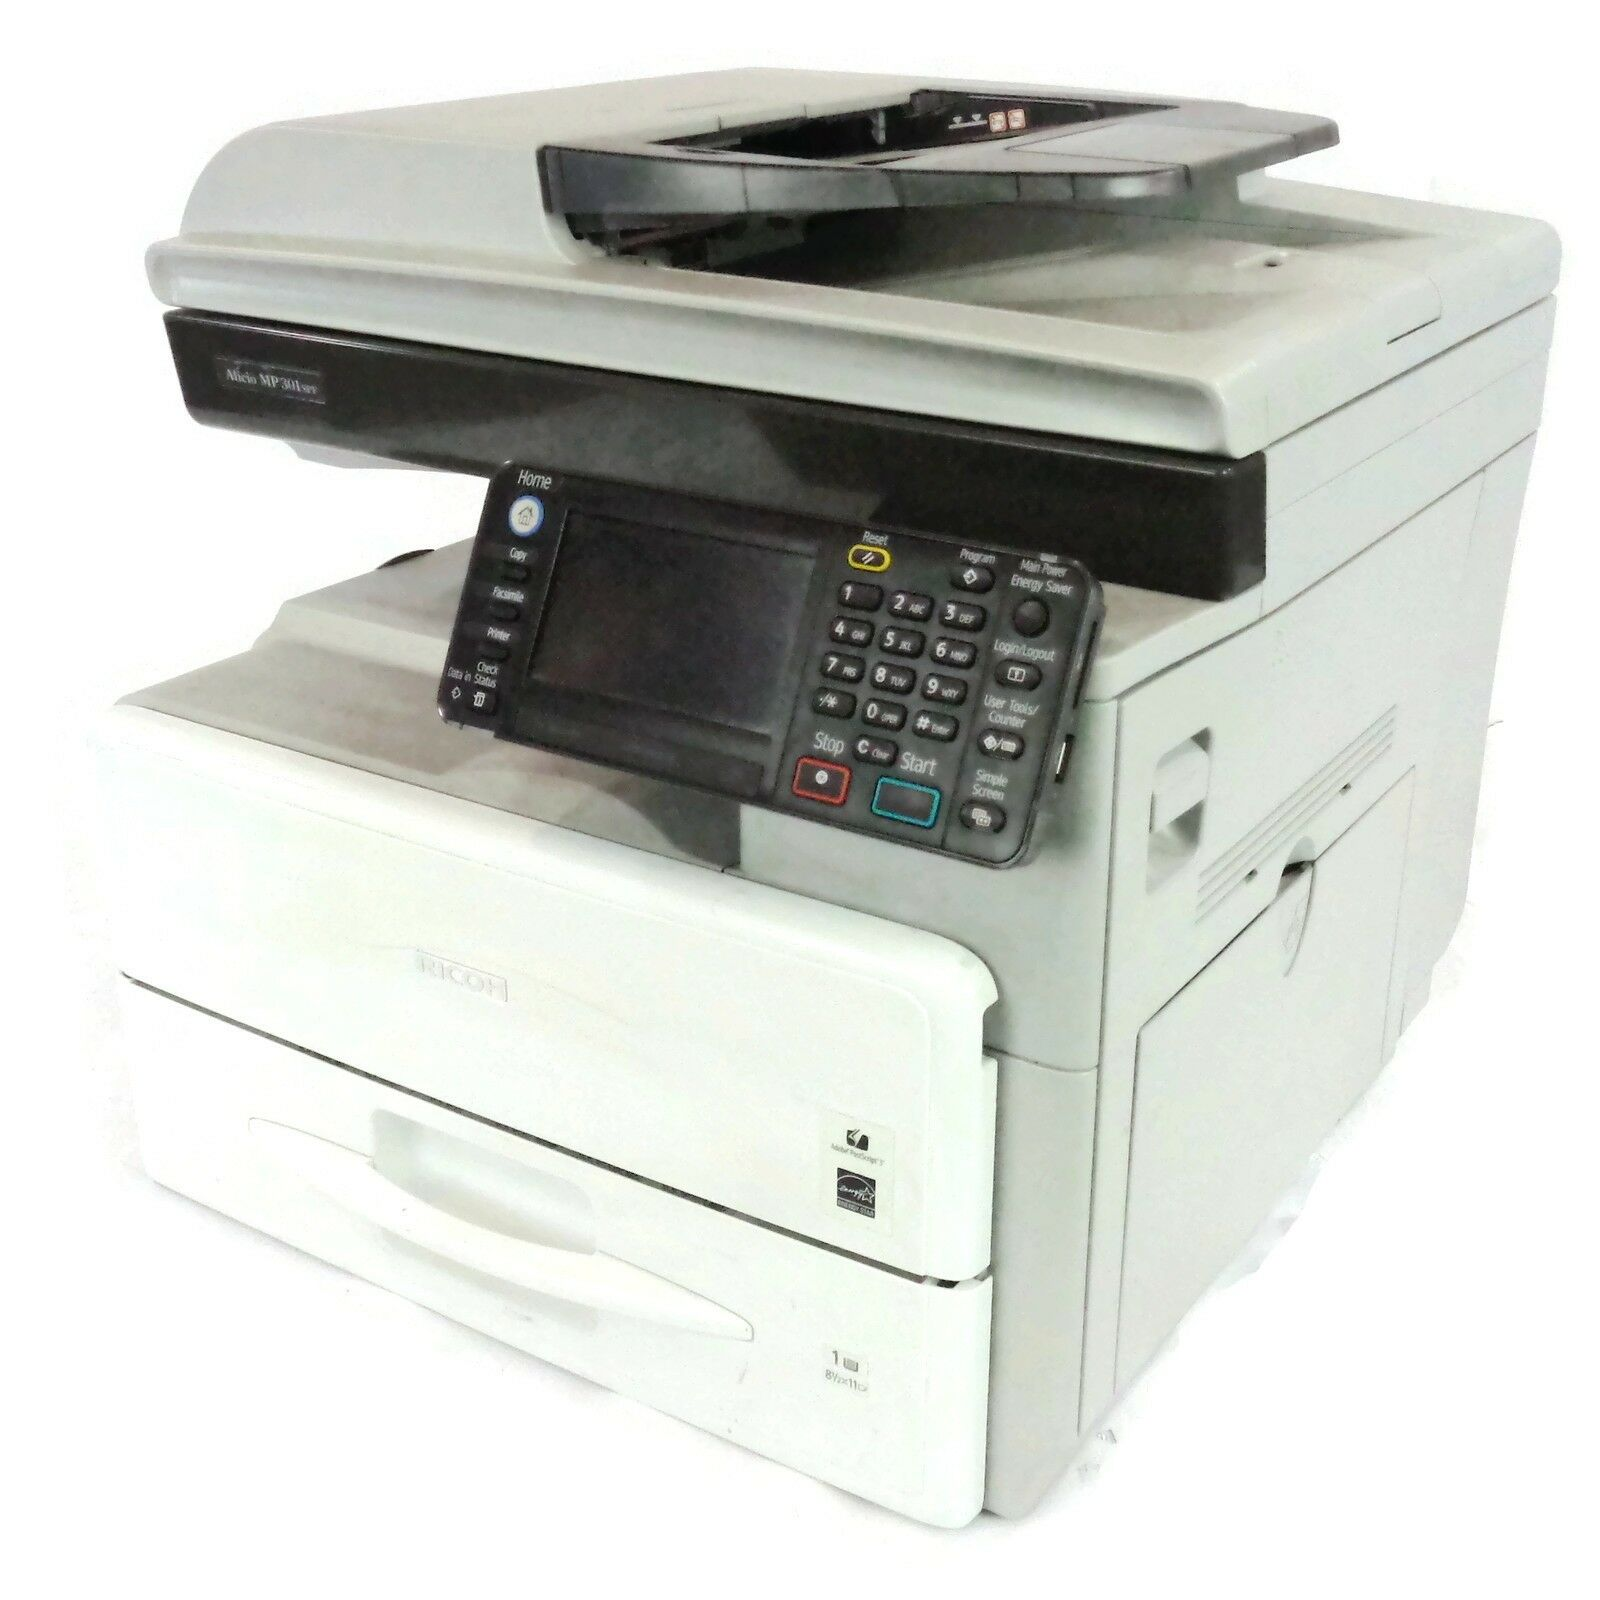 Details about Lot of 2 Ricoh Aficio MP 301SPF Multifunction Touchscreen  Laser Printer